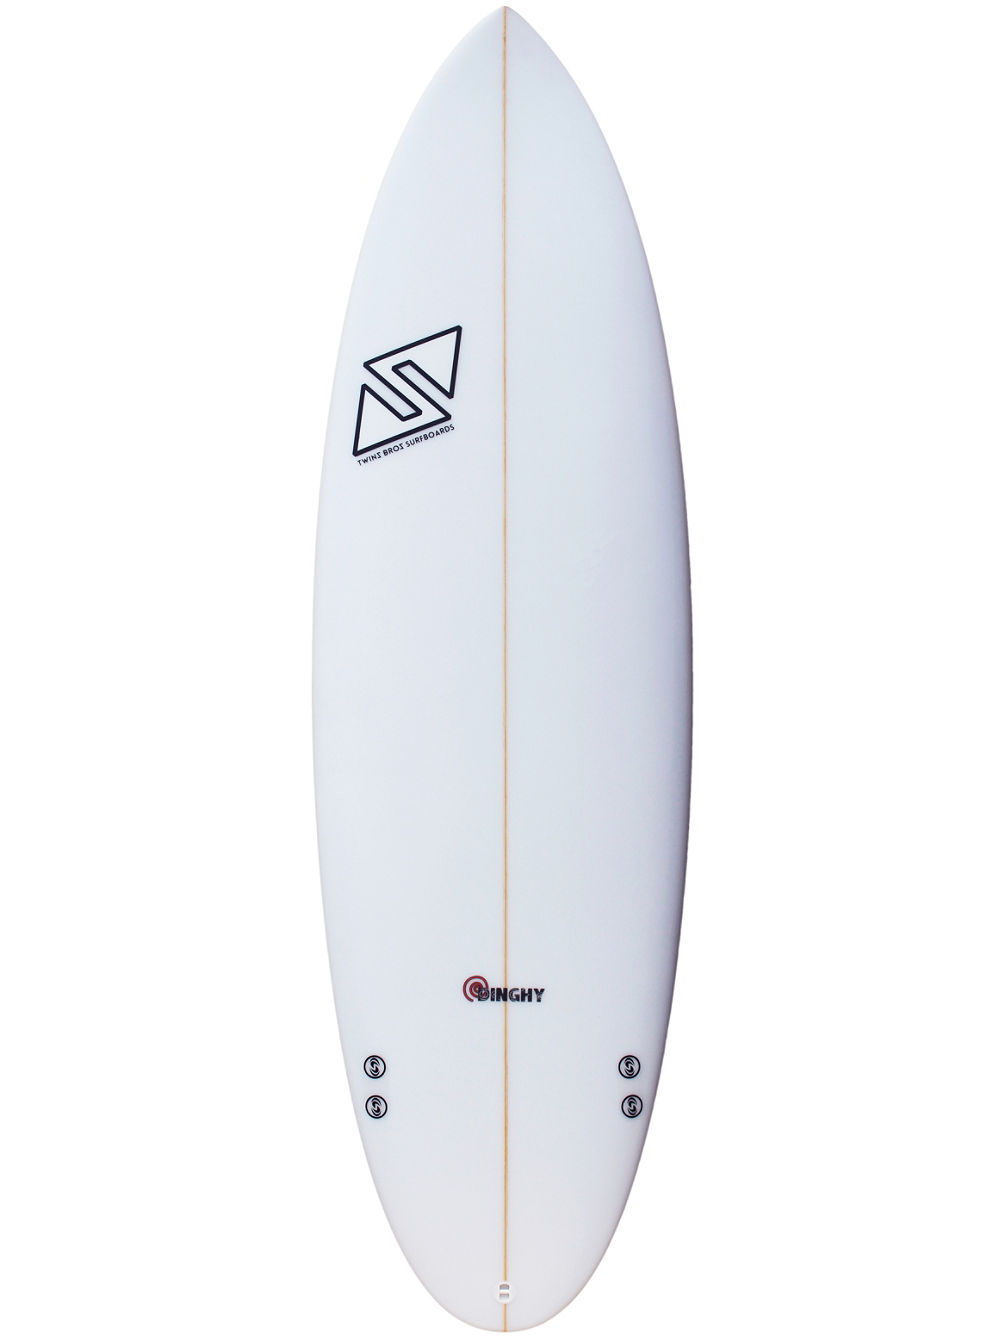 Dinghy FCS 5'7 Surfboard